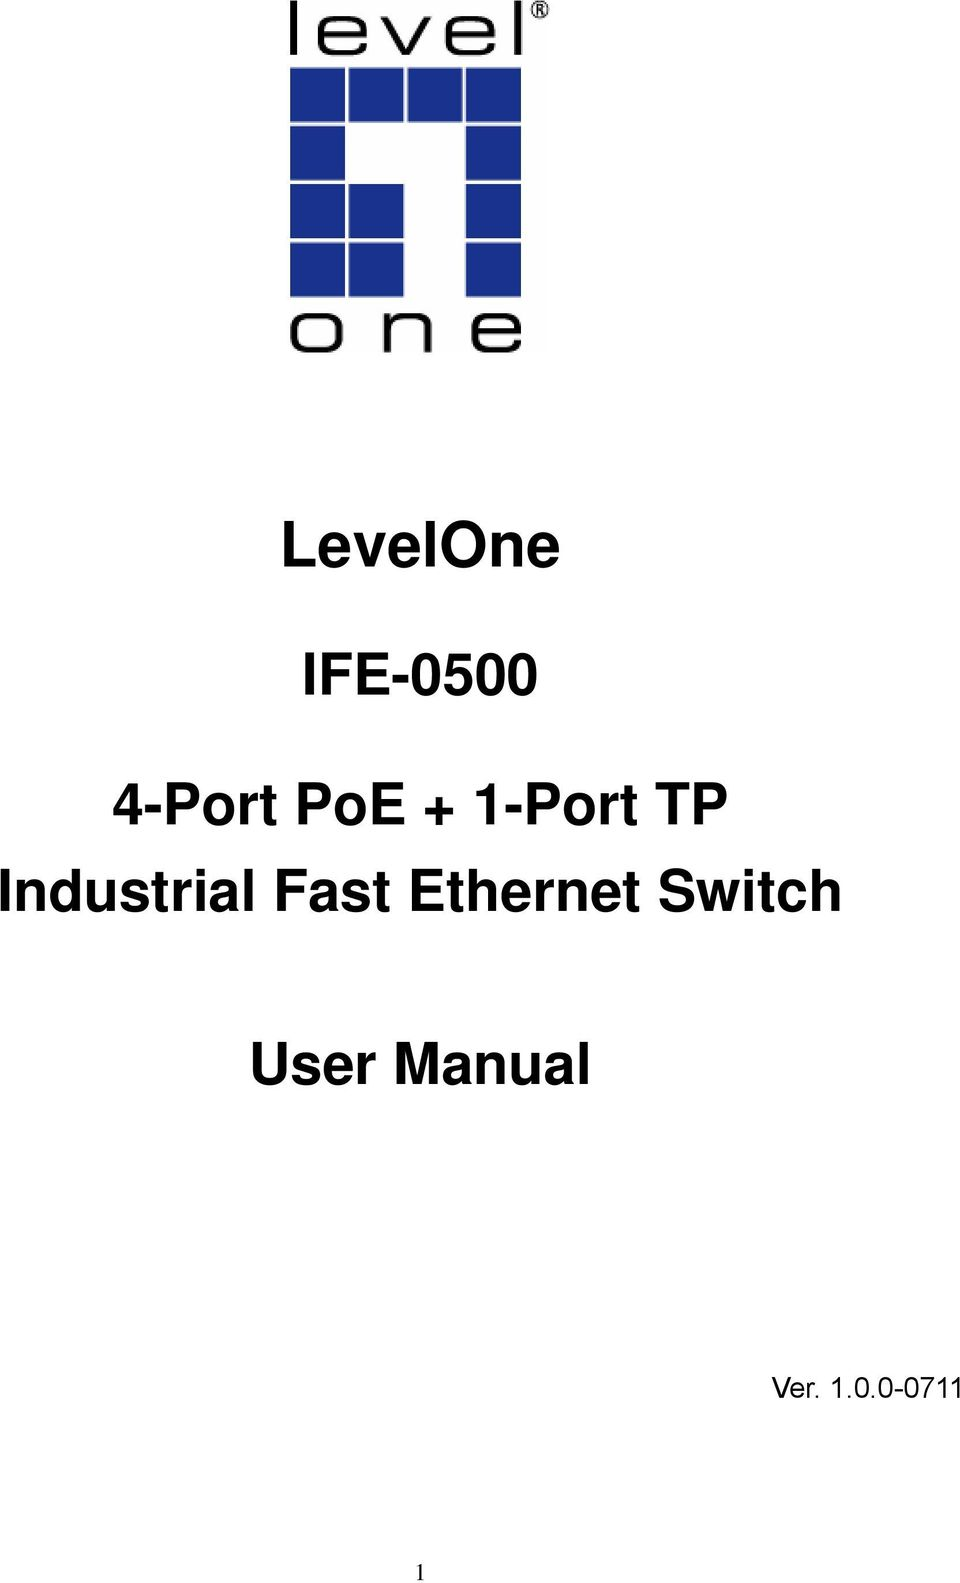 Industrial Fast Ethernet